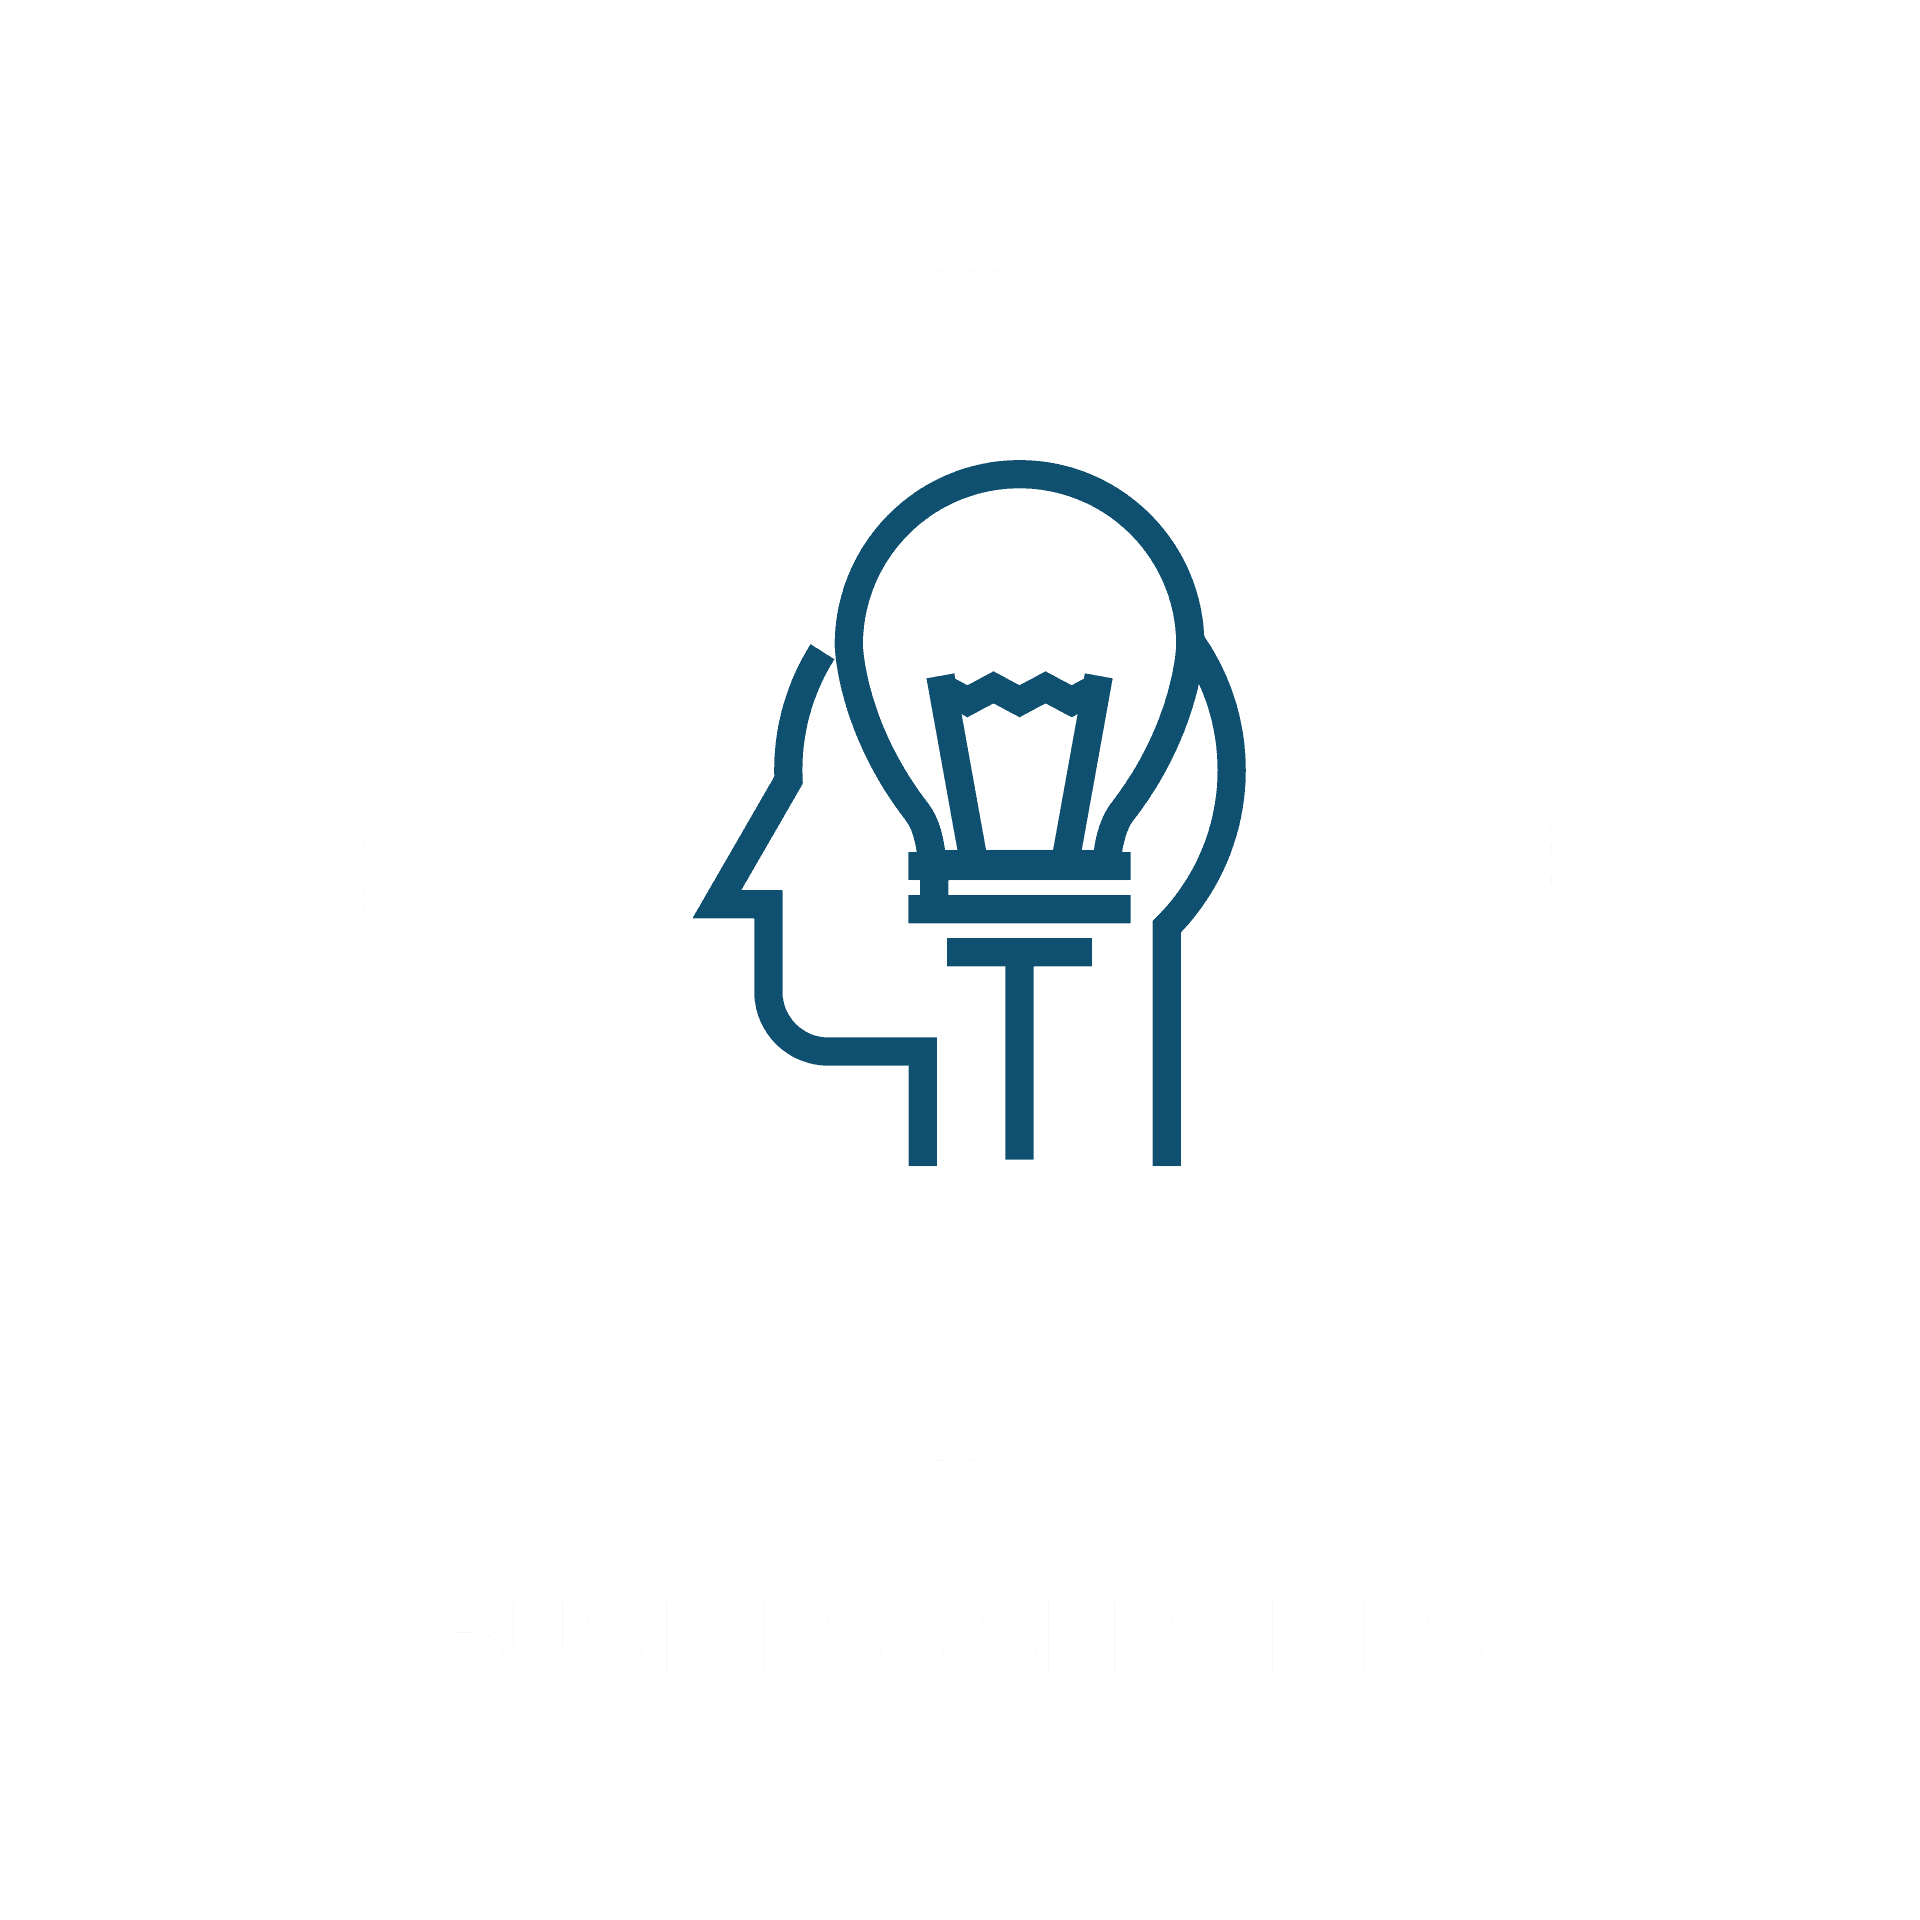 Marketing Business Services